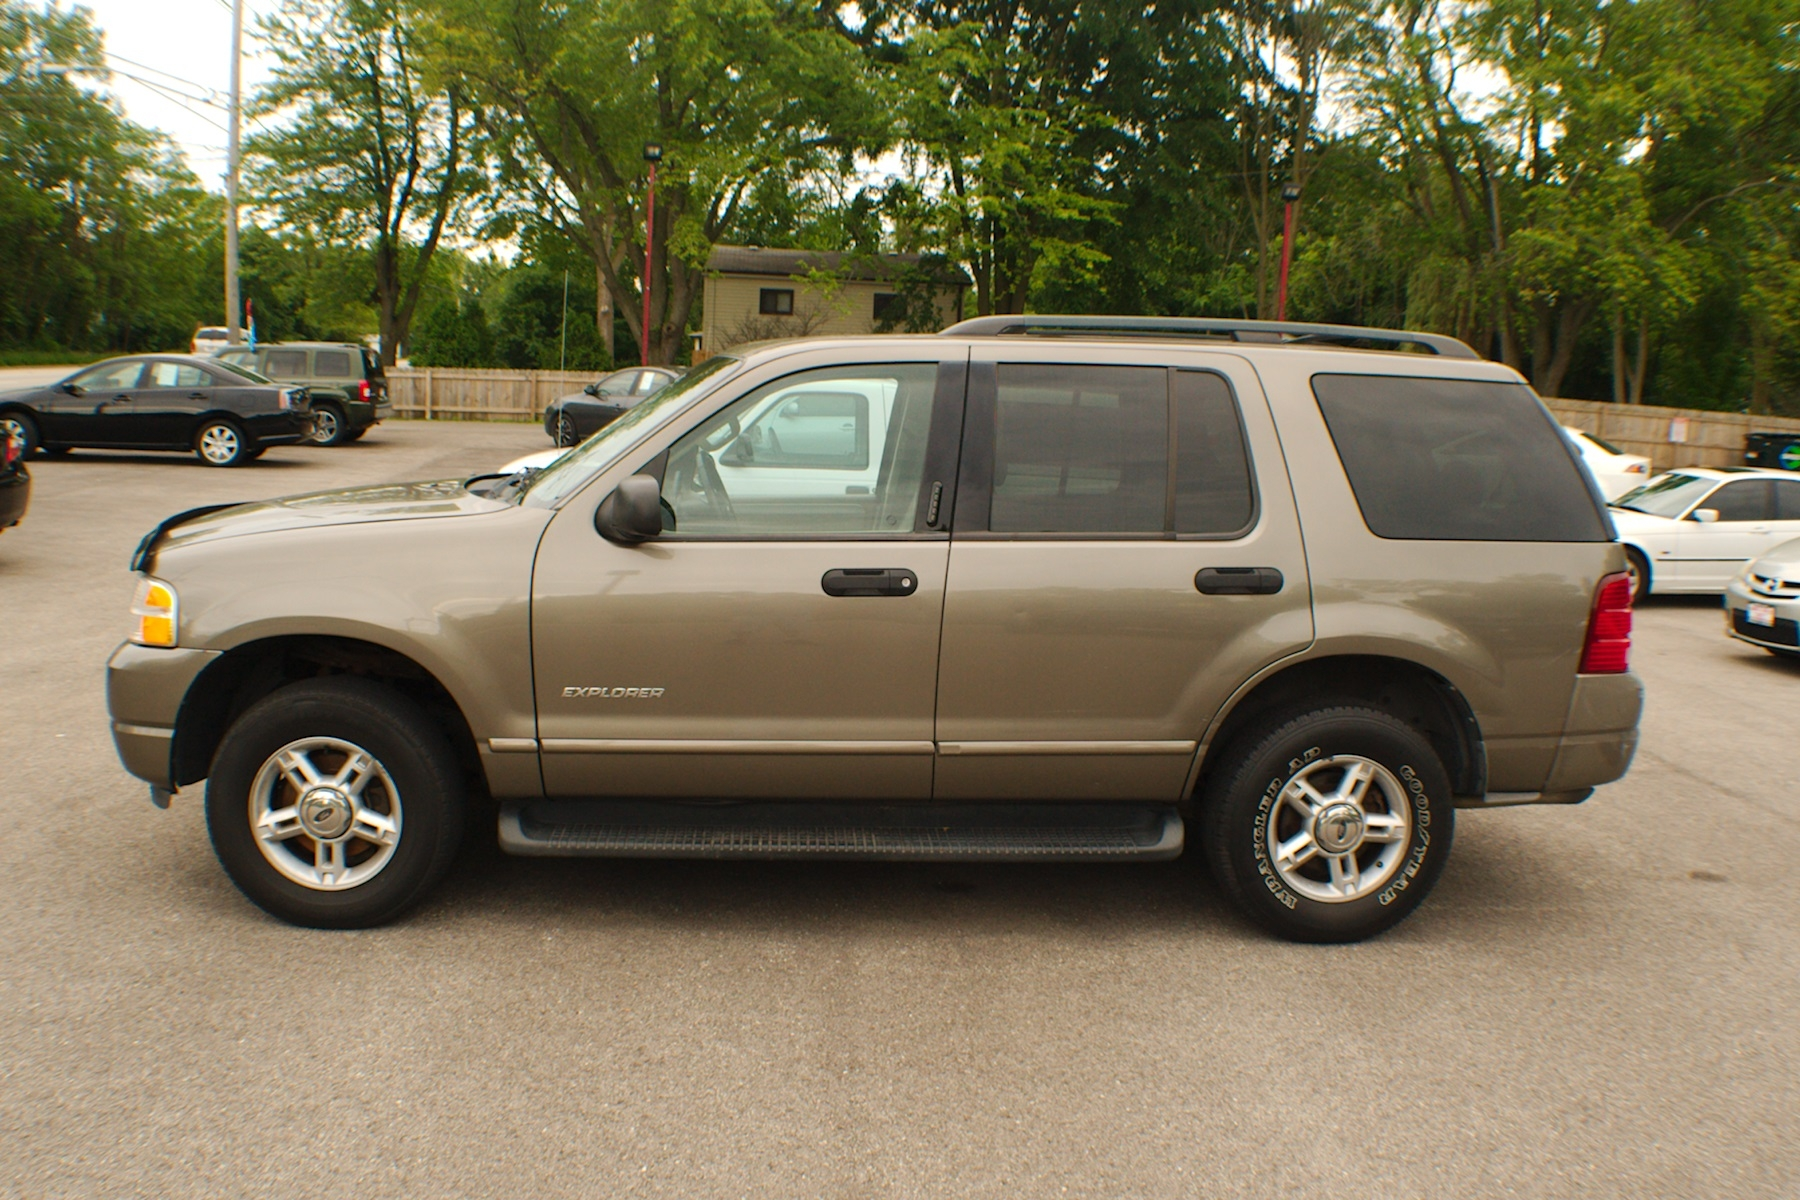 2003 ford explorer xlt pewter 4x4 used suv sale. Black Bedroom Furniture Sets. Home Design Ideas